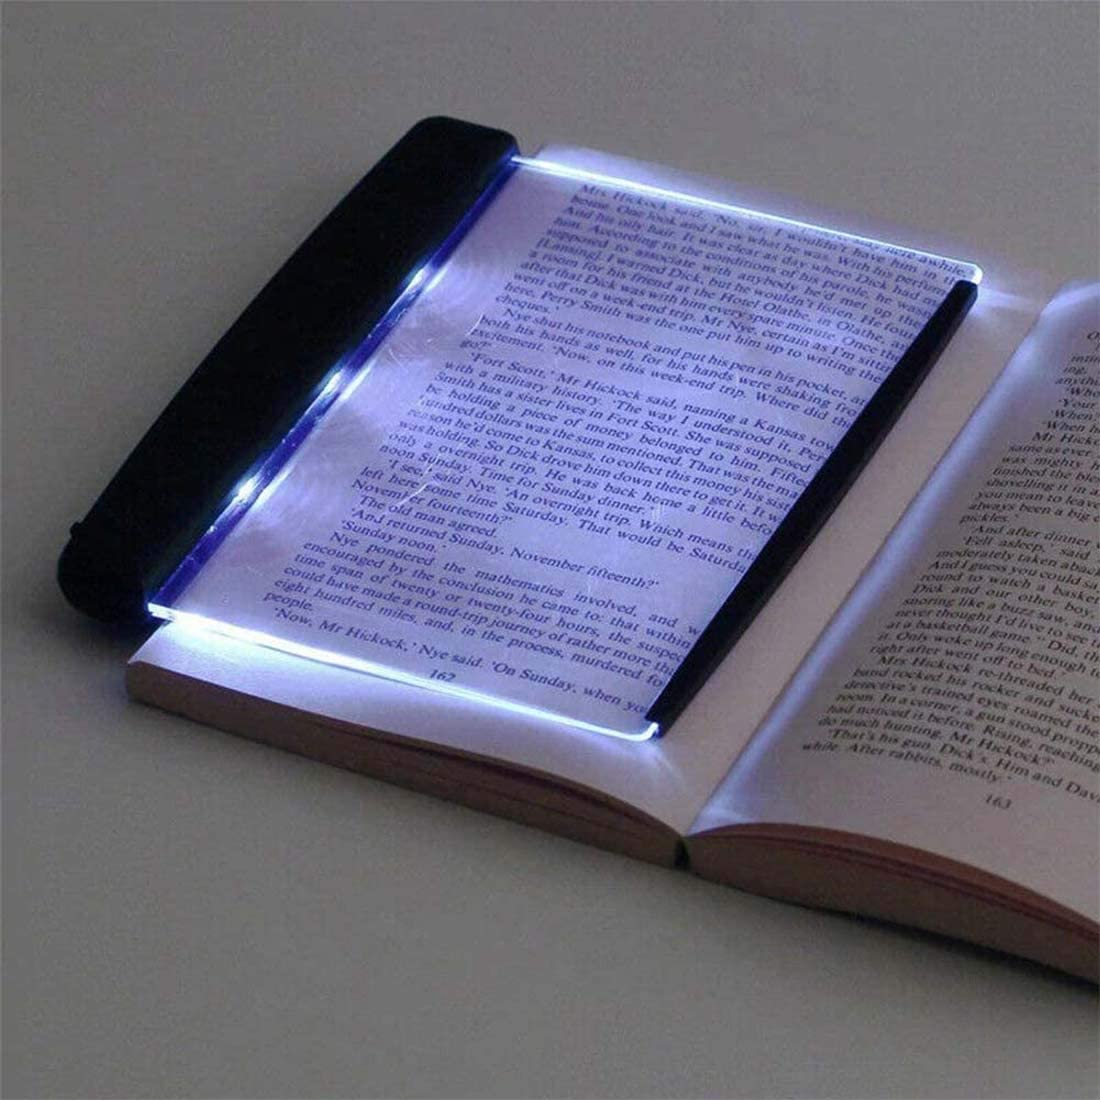 Bookglow Reading Light,creative flat plate led book light reading night,Lightwedge Book Light,LED Reading Bright Light Lamp Board Home Studying Reading Accessory